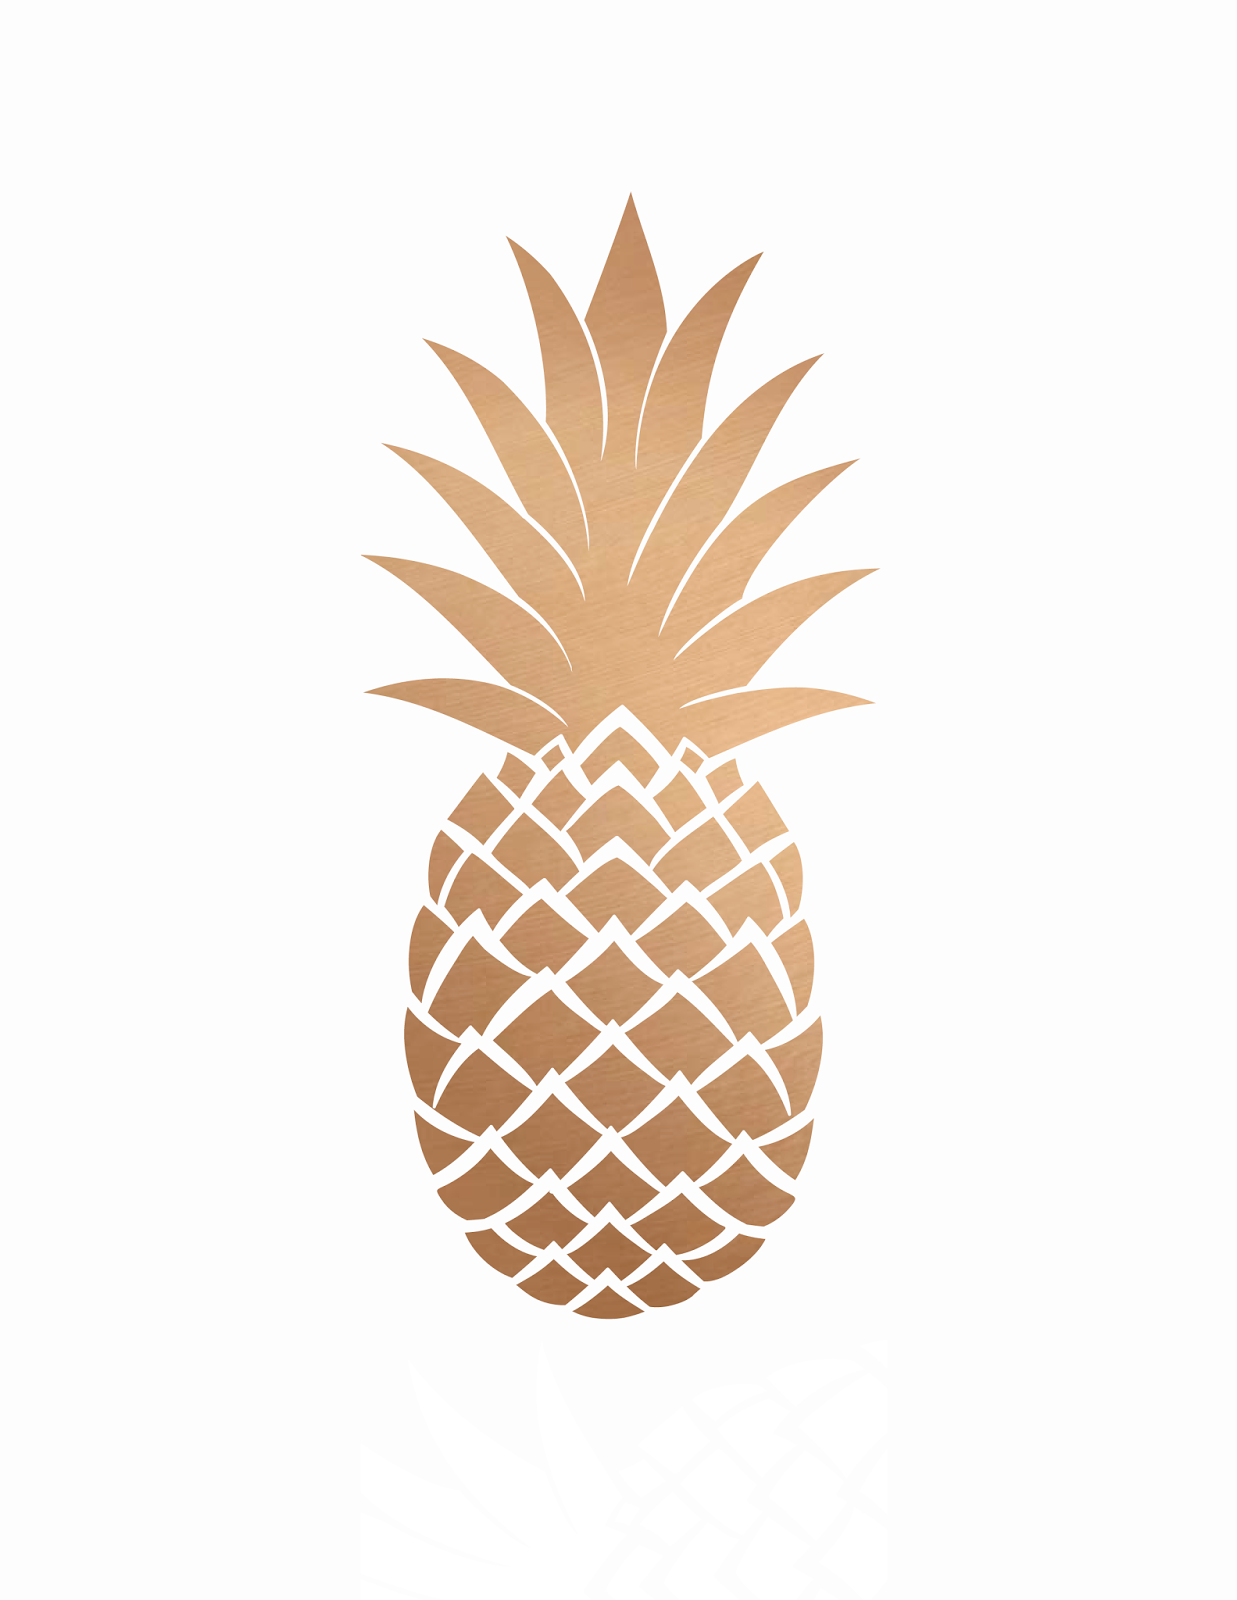 Download your FREE pineapple printables and add some fun to your home decor, office, or kid's spaces! There are three colors to choose from.